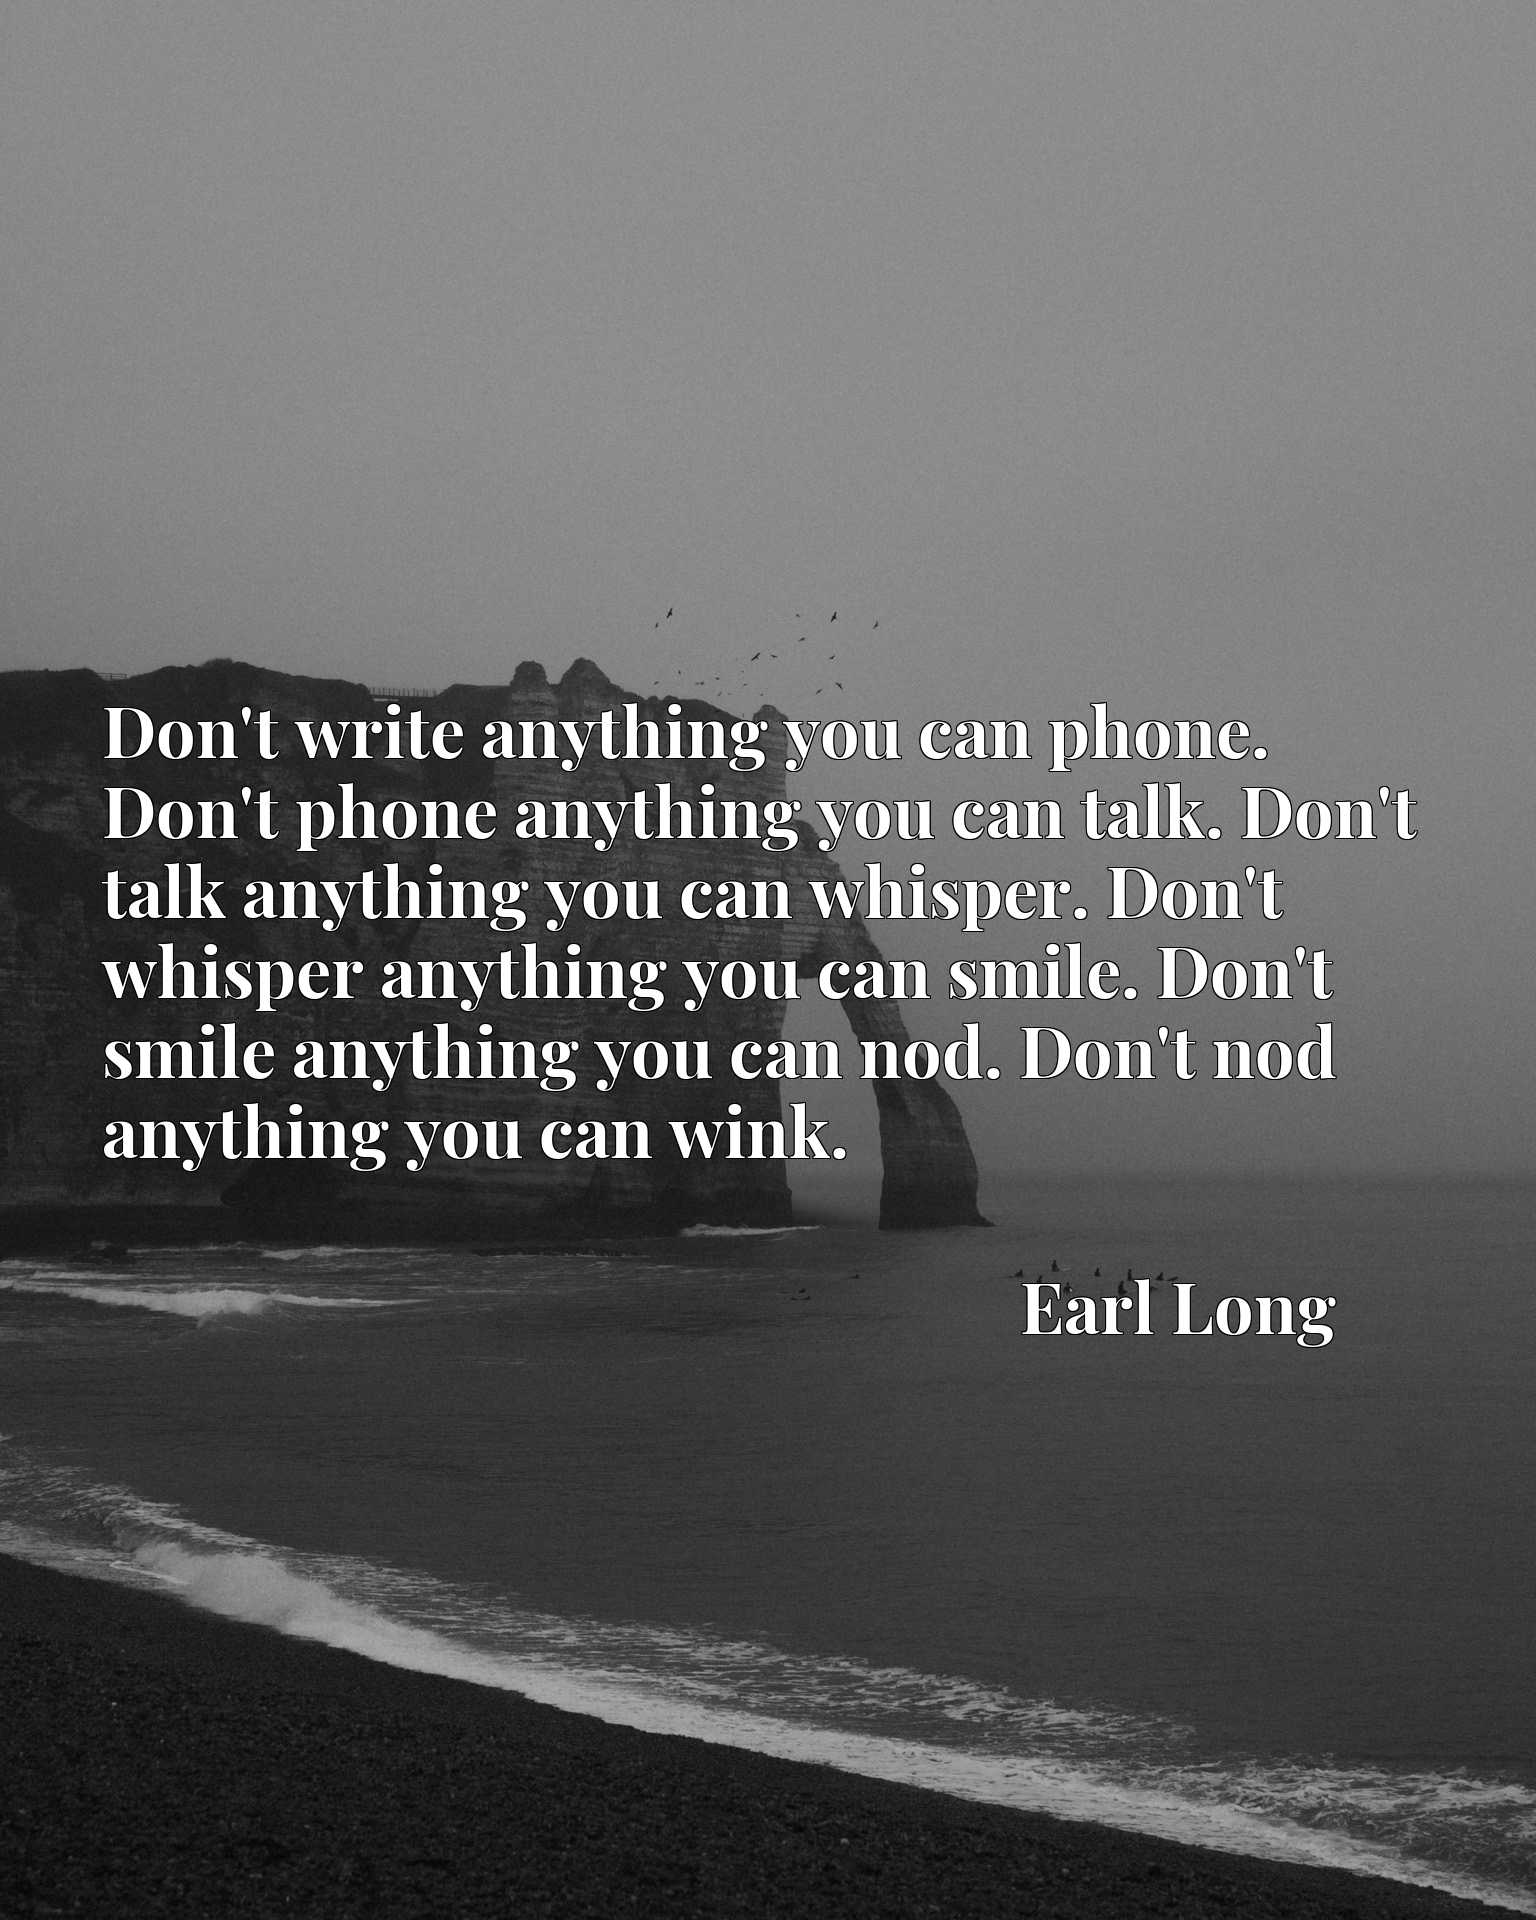 Don't write anything you can phone. Don't phone anything you can talk. Don't talk anything you can whisper. Don't whisper anything you can smile. Don't smile anything you can nod. Don't nod anything you can wink.